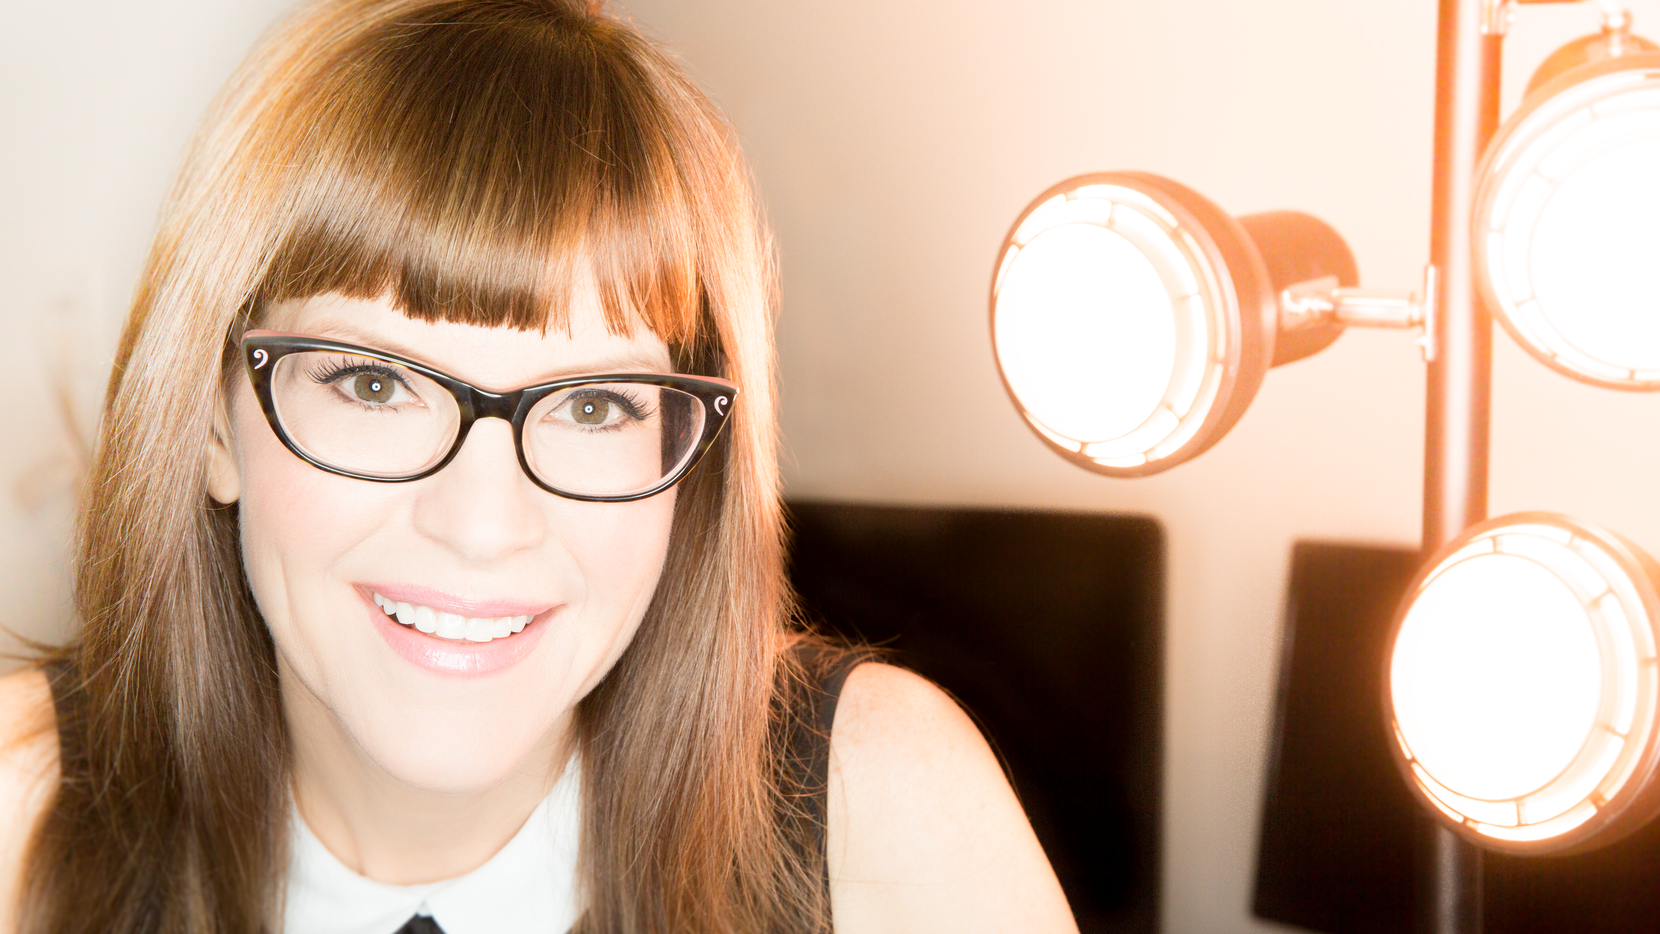 """I've spent a lot of my life trying to write songs that were mysterious,"" Lisa Loeb says. But now, she says, she tries to be more direct in her songwriting."